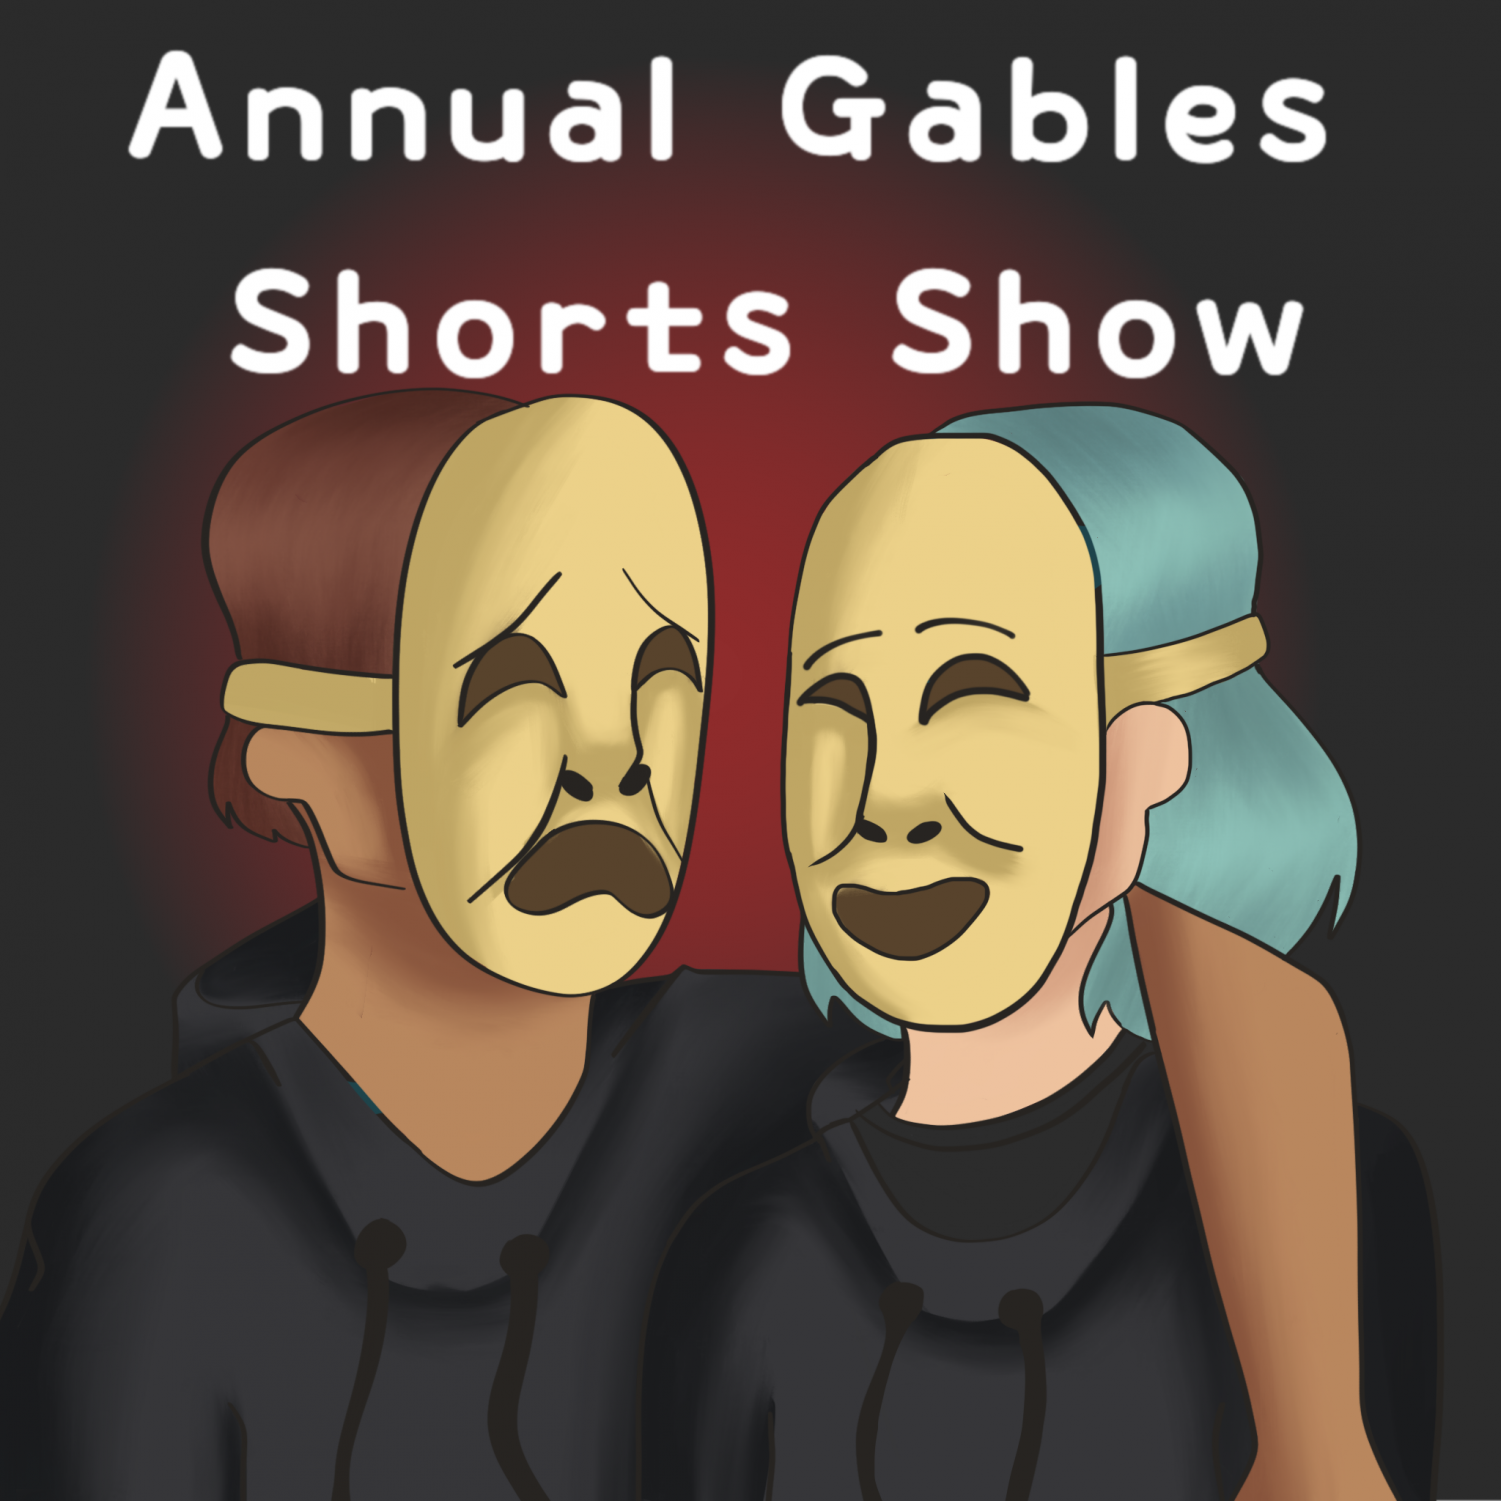 Gables Shorts featured original content written, performed and directed by our very own Cavaliers.